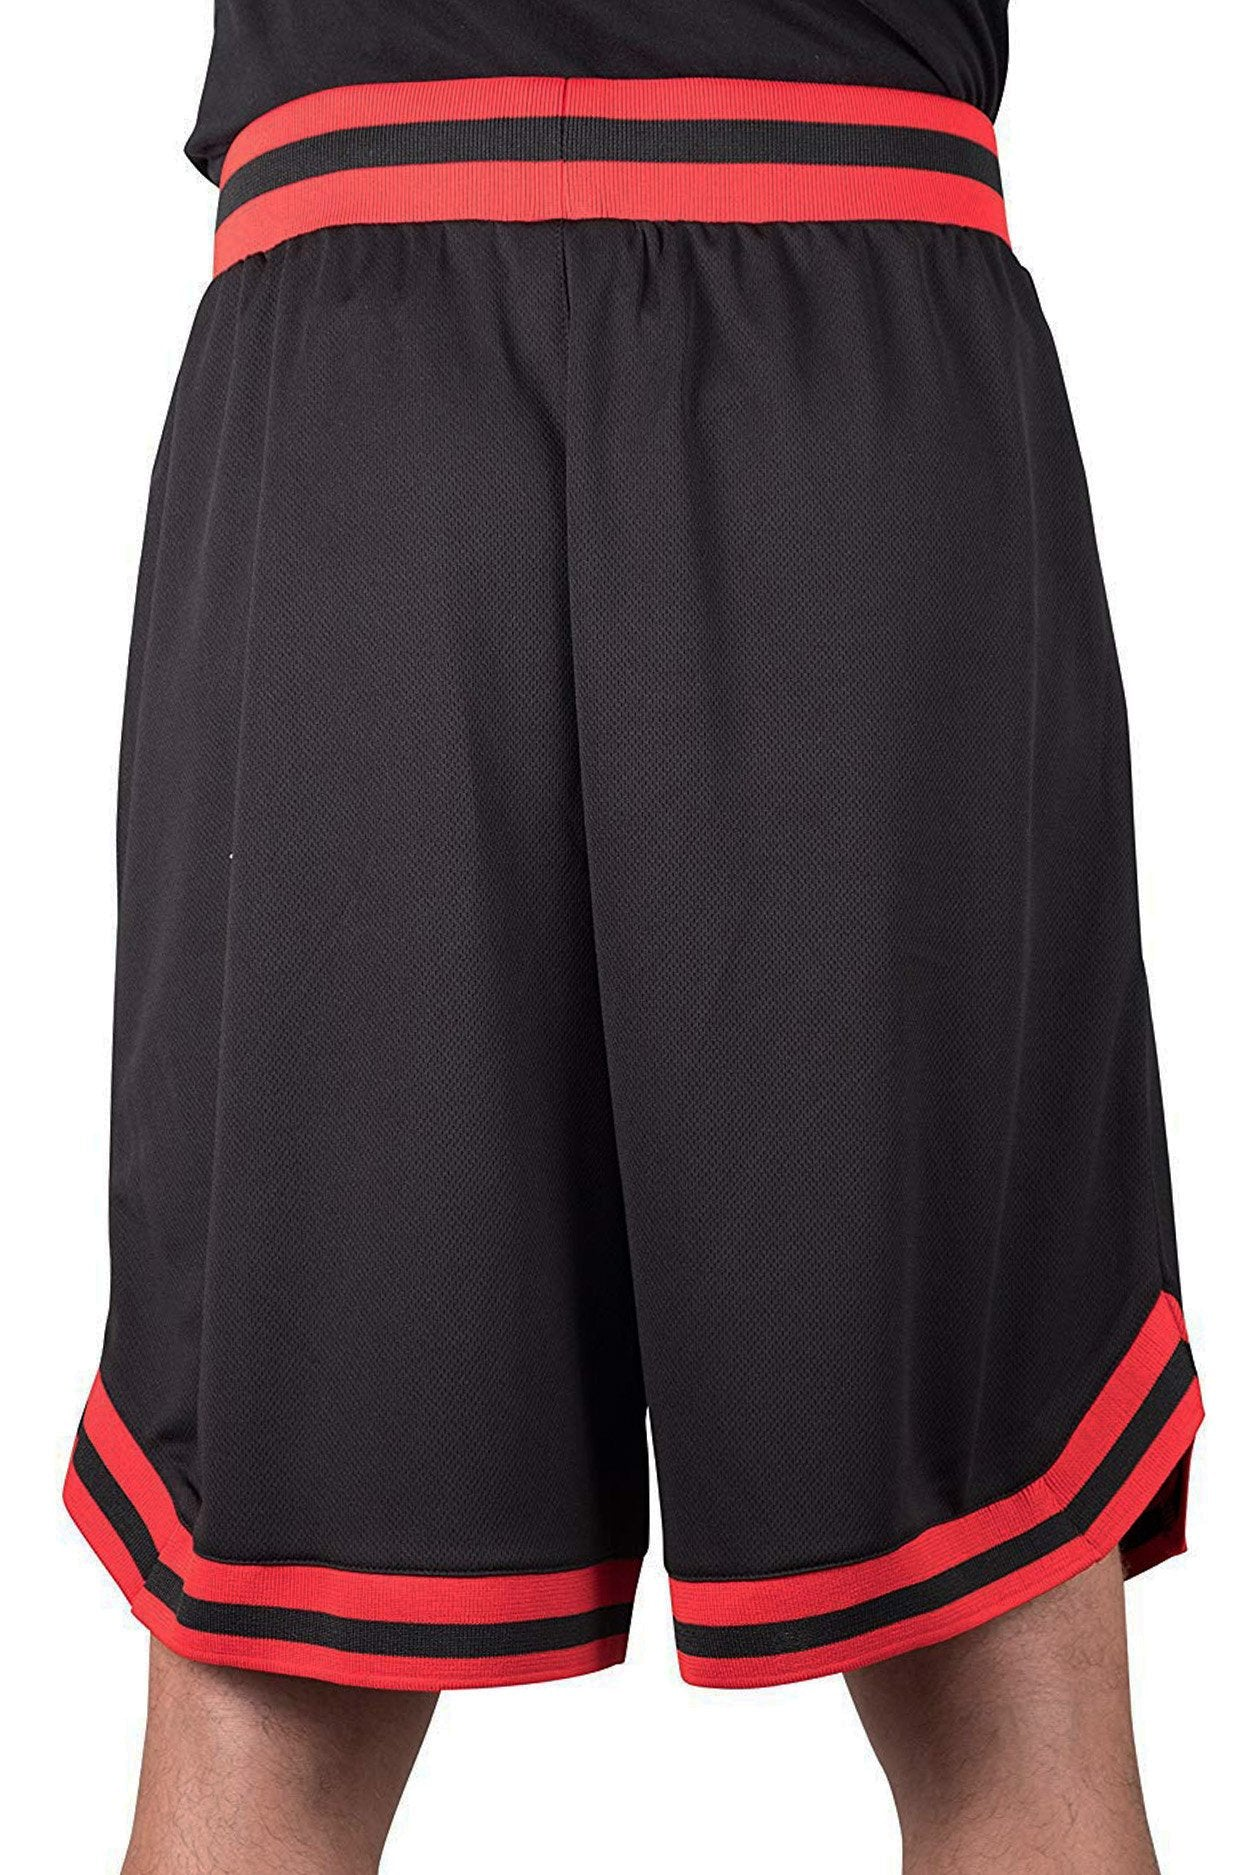 NBA Chicago Bulls Men's Basketball Shorts|Chicago Bulls